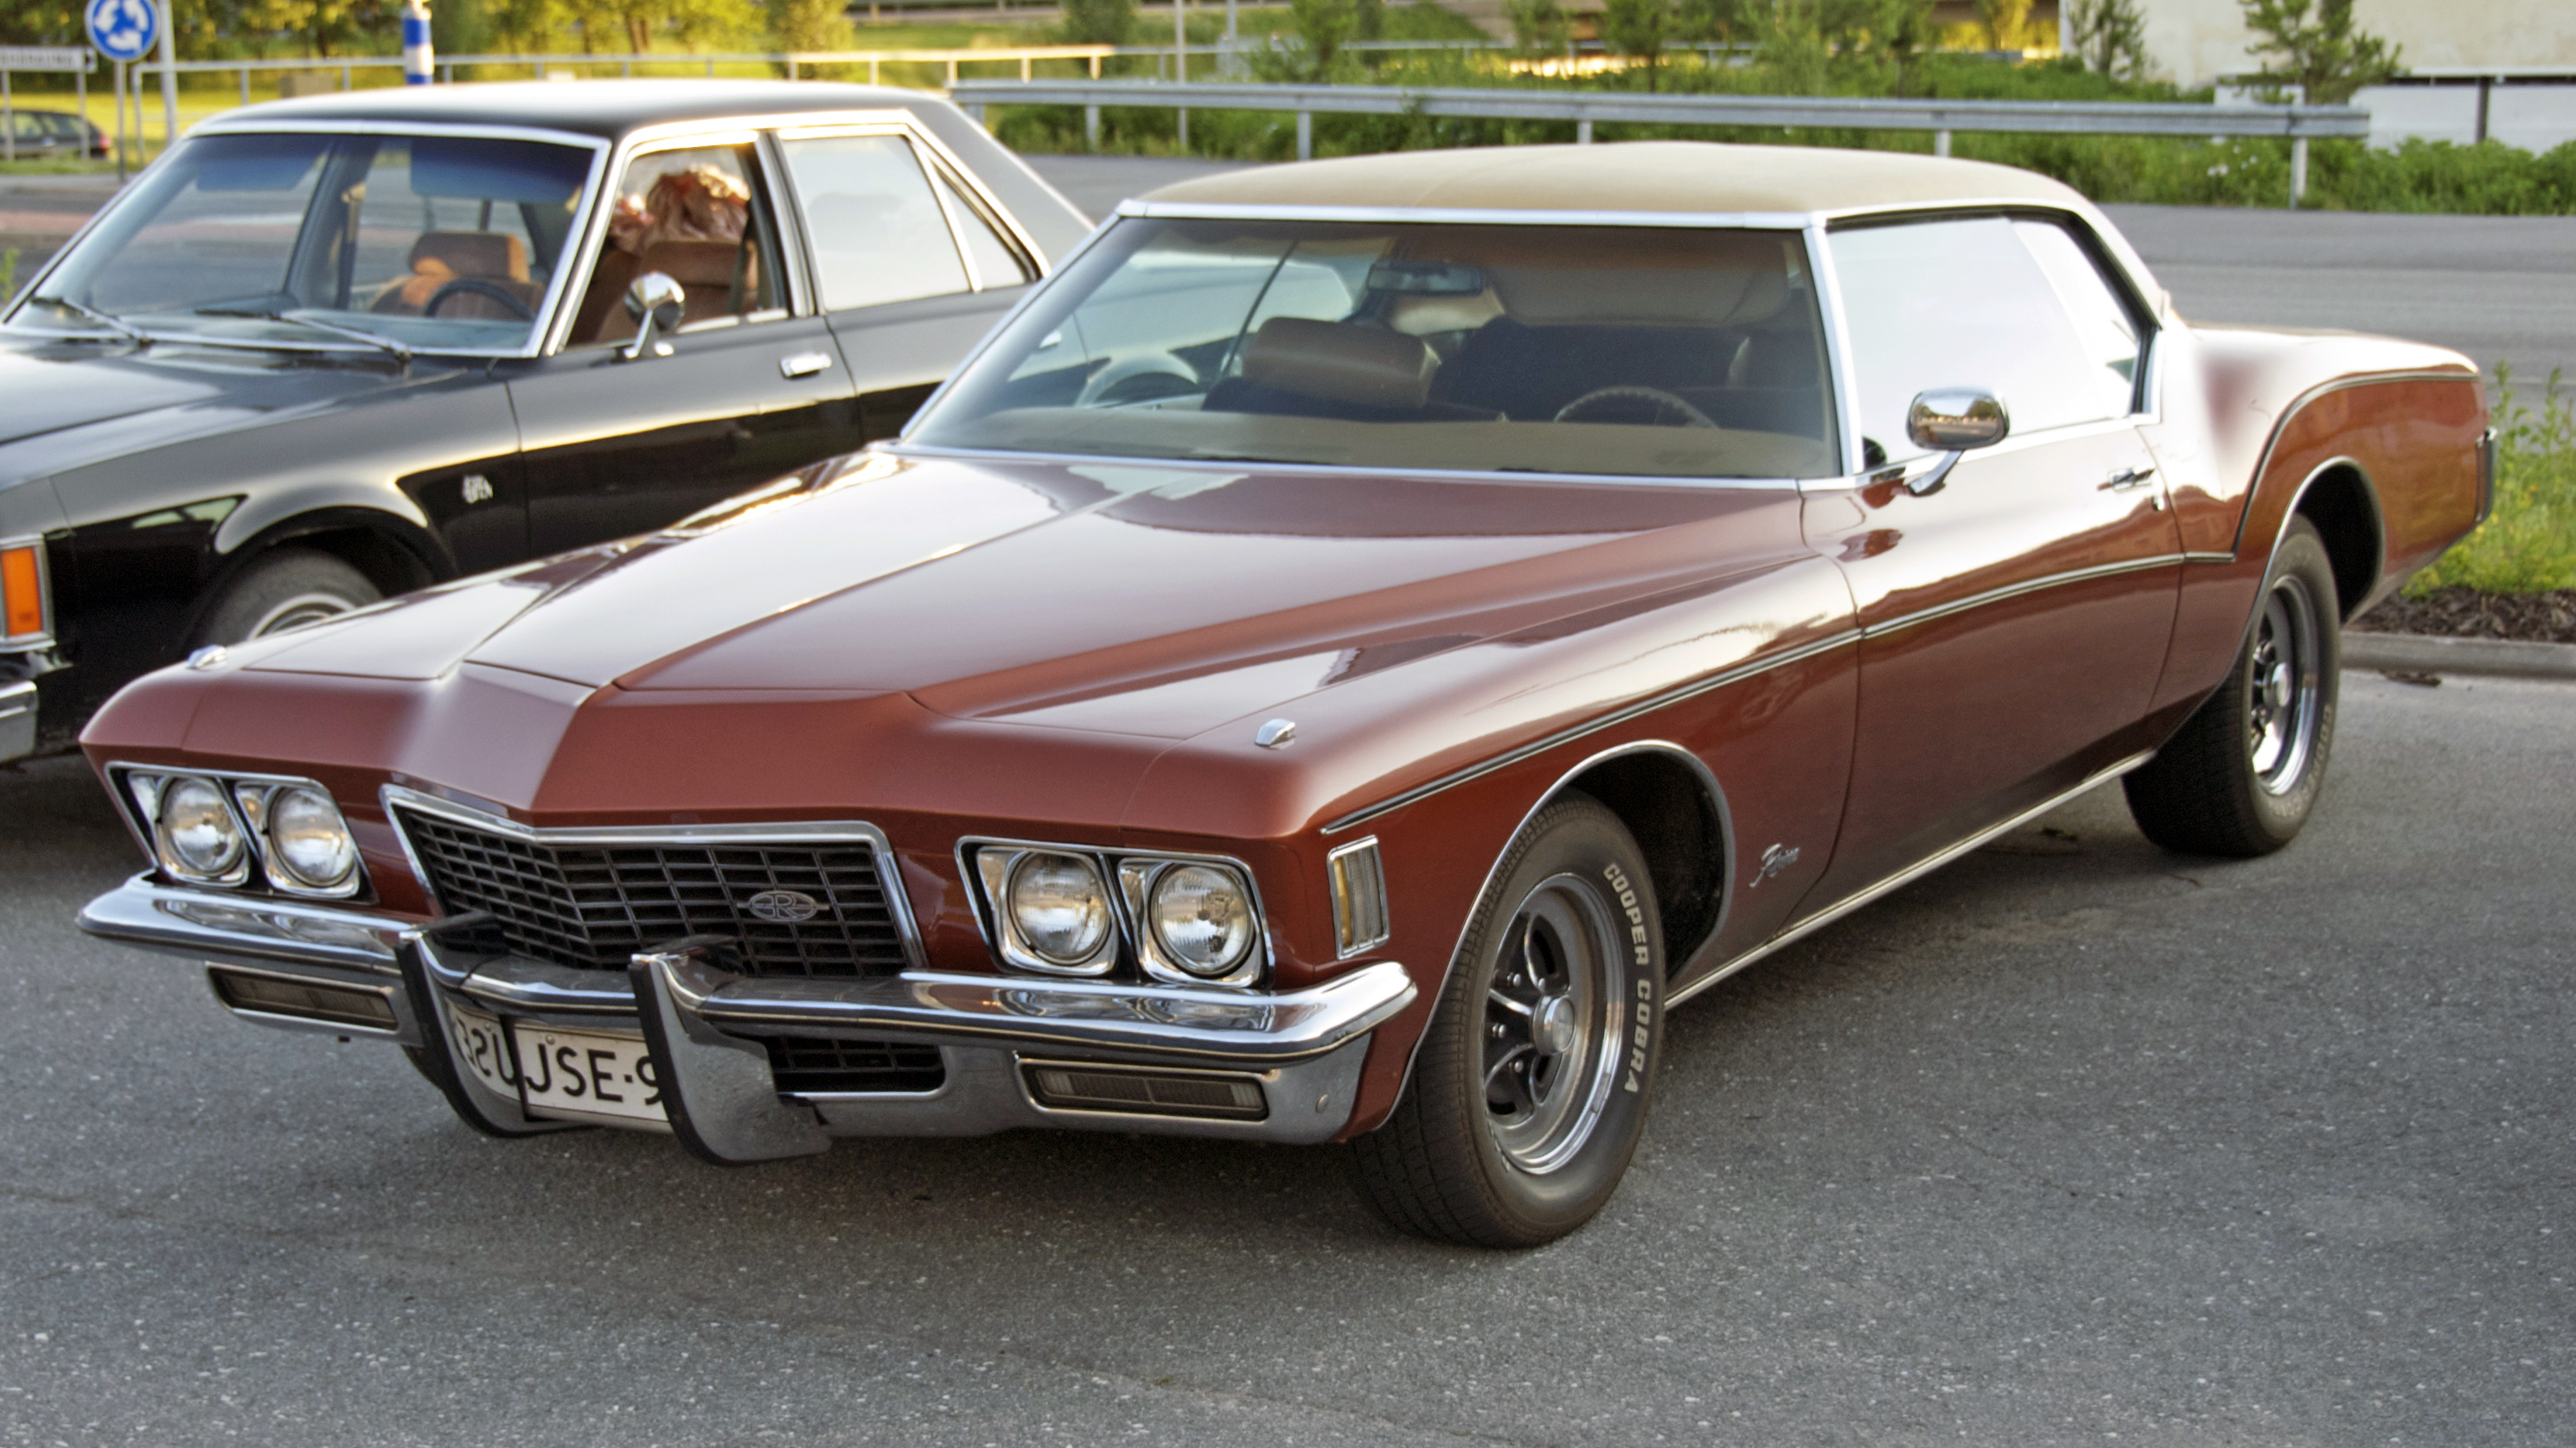 buick riviera images #8